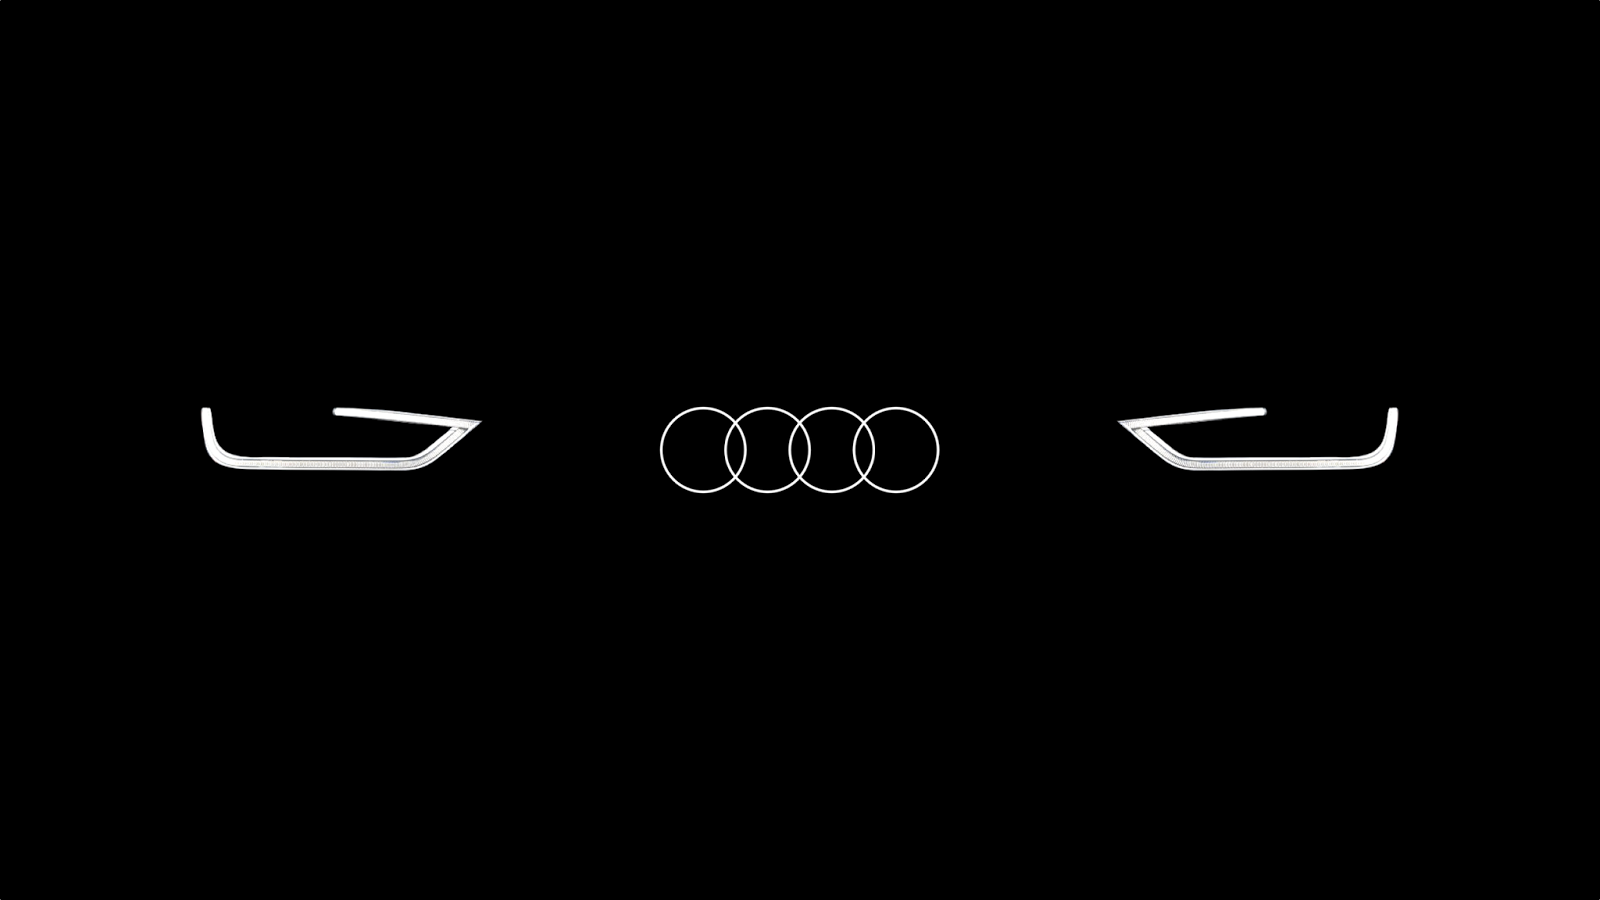 audi logo cars show logos. Black Bedroom Furniture Sets. Home Design Ideas